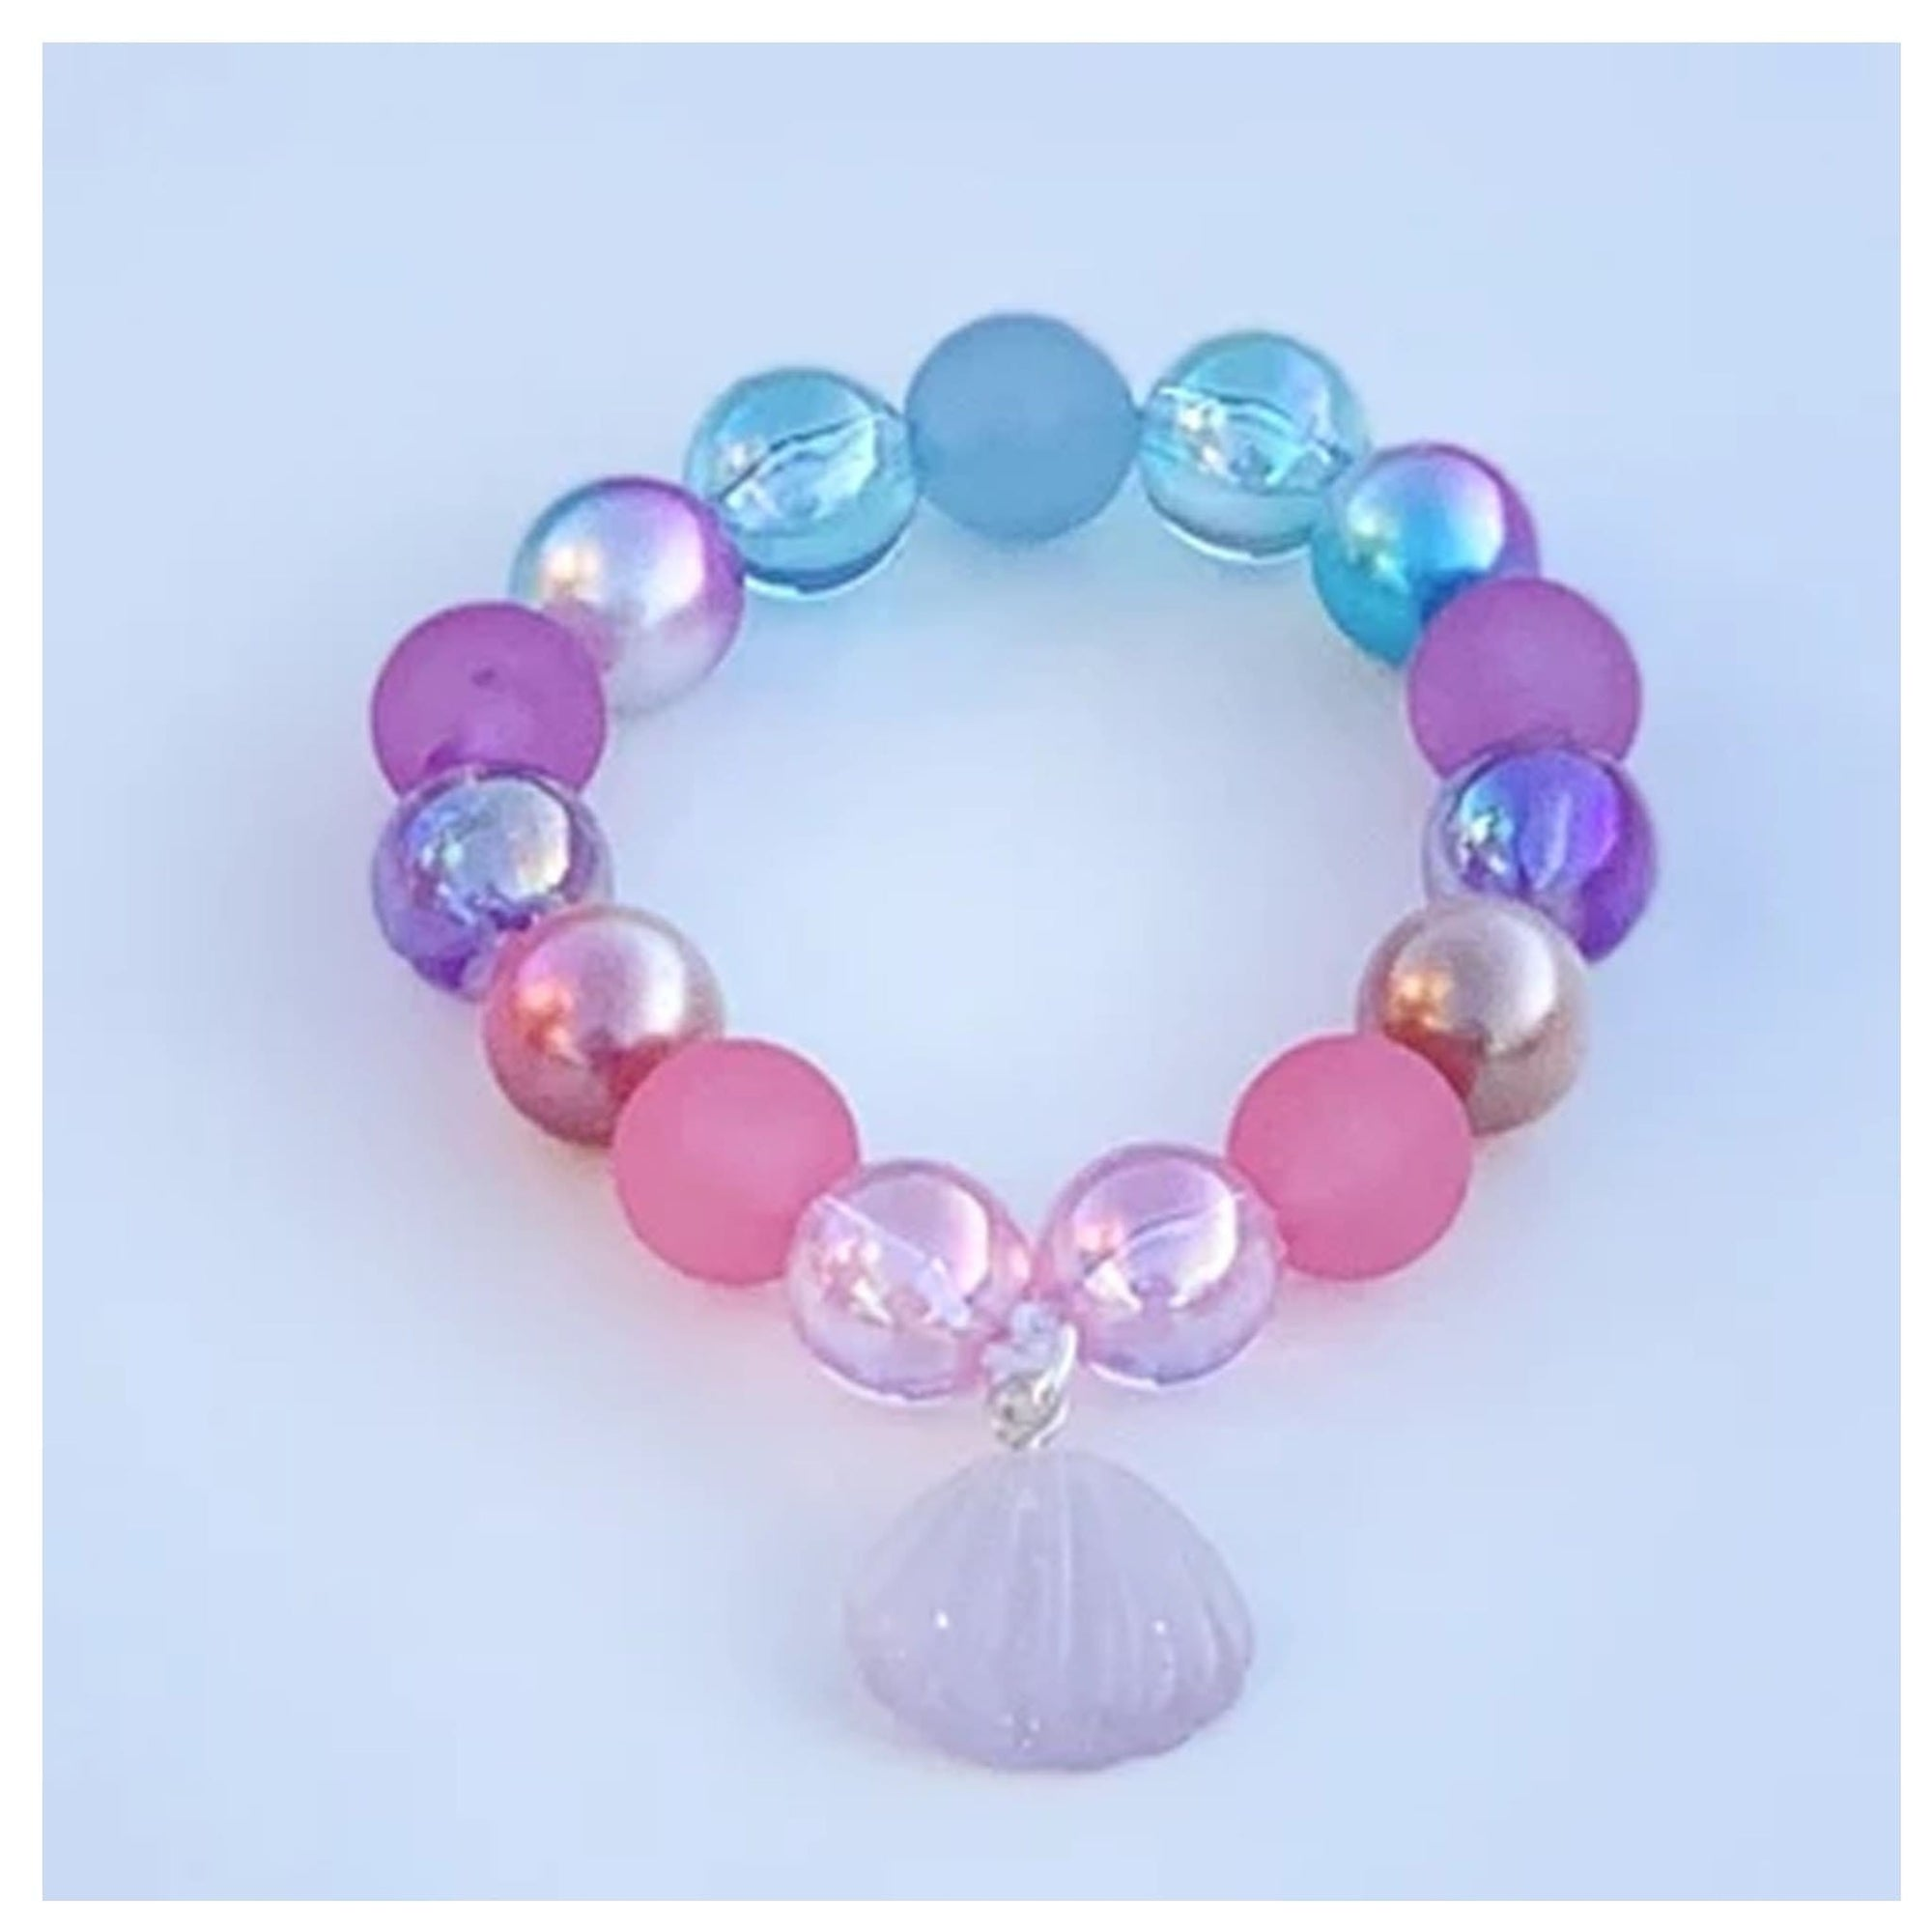 Sweet as Sugar Jellewery Beaded Mermaid Bracelet